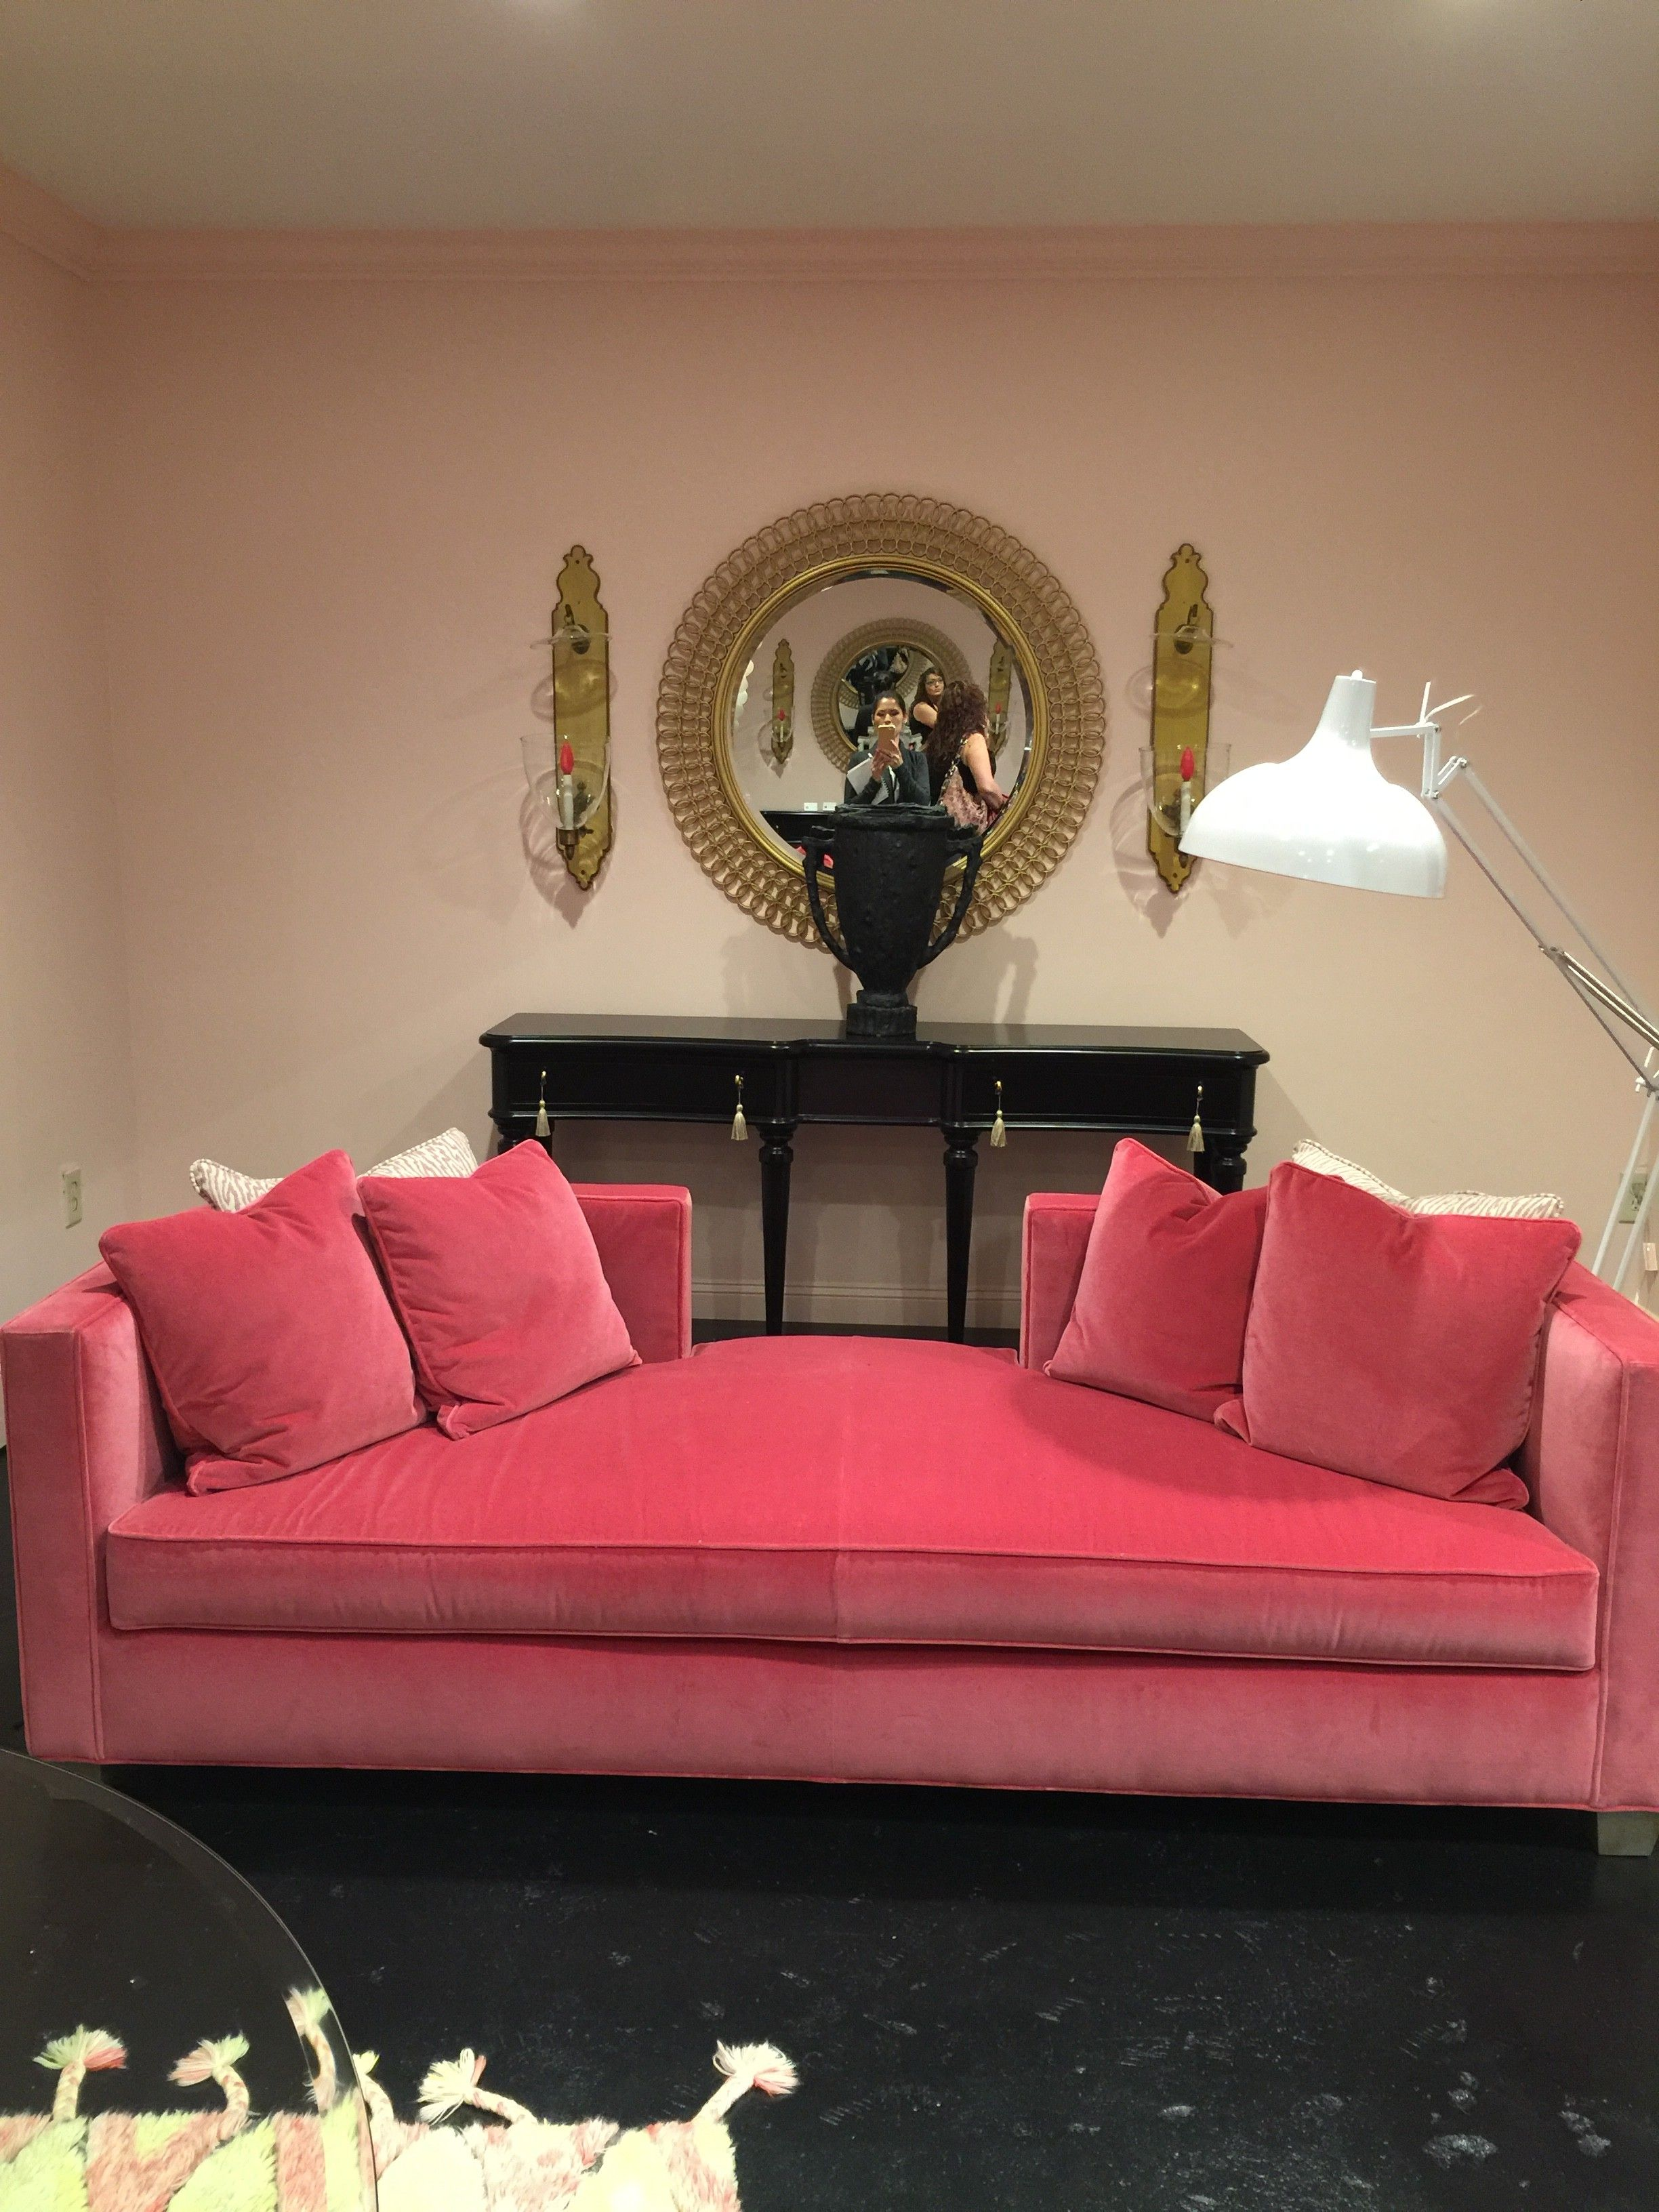 Christy Davis Interiors  Cynthia Rowley for Hooker Furniture. Christy Davis Interiors  Cynthia Rowley for Hooker Furniture